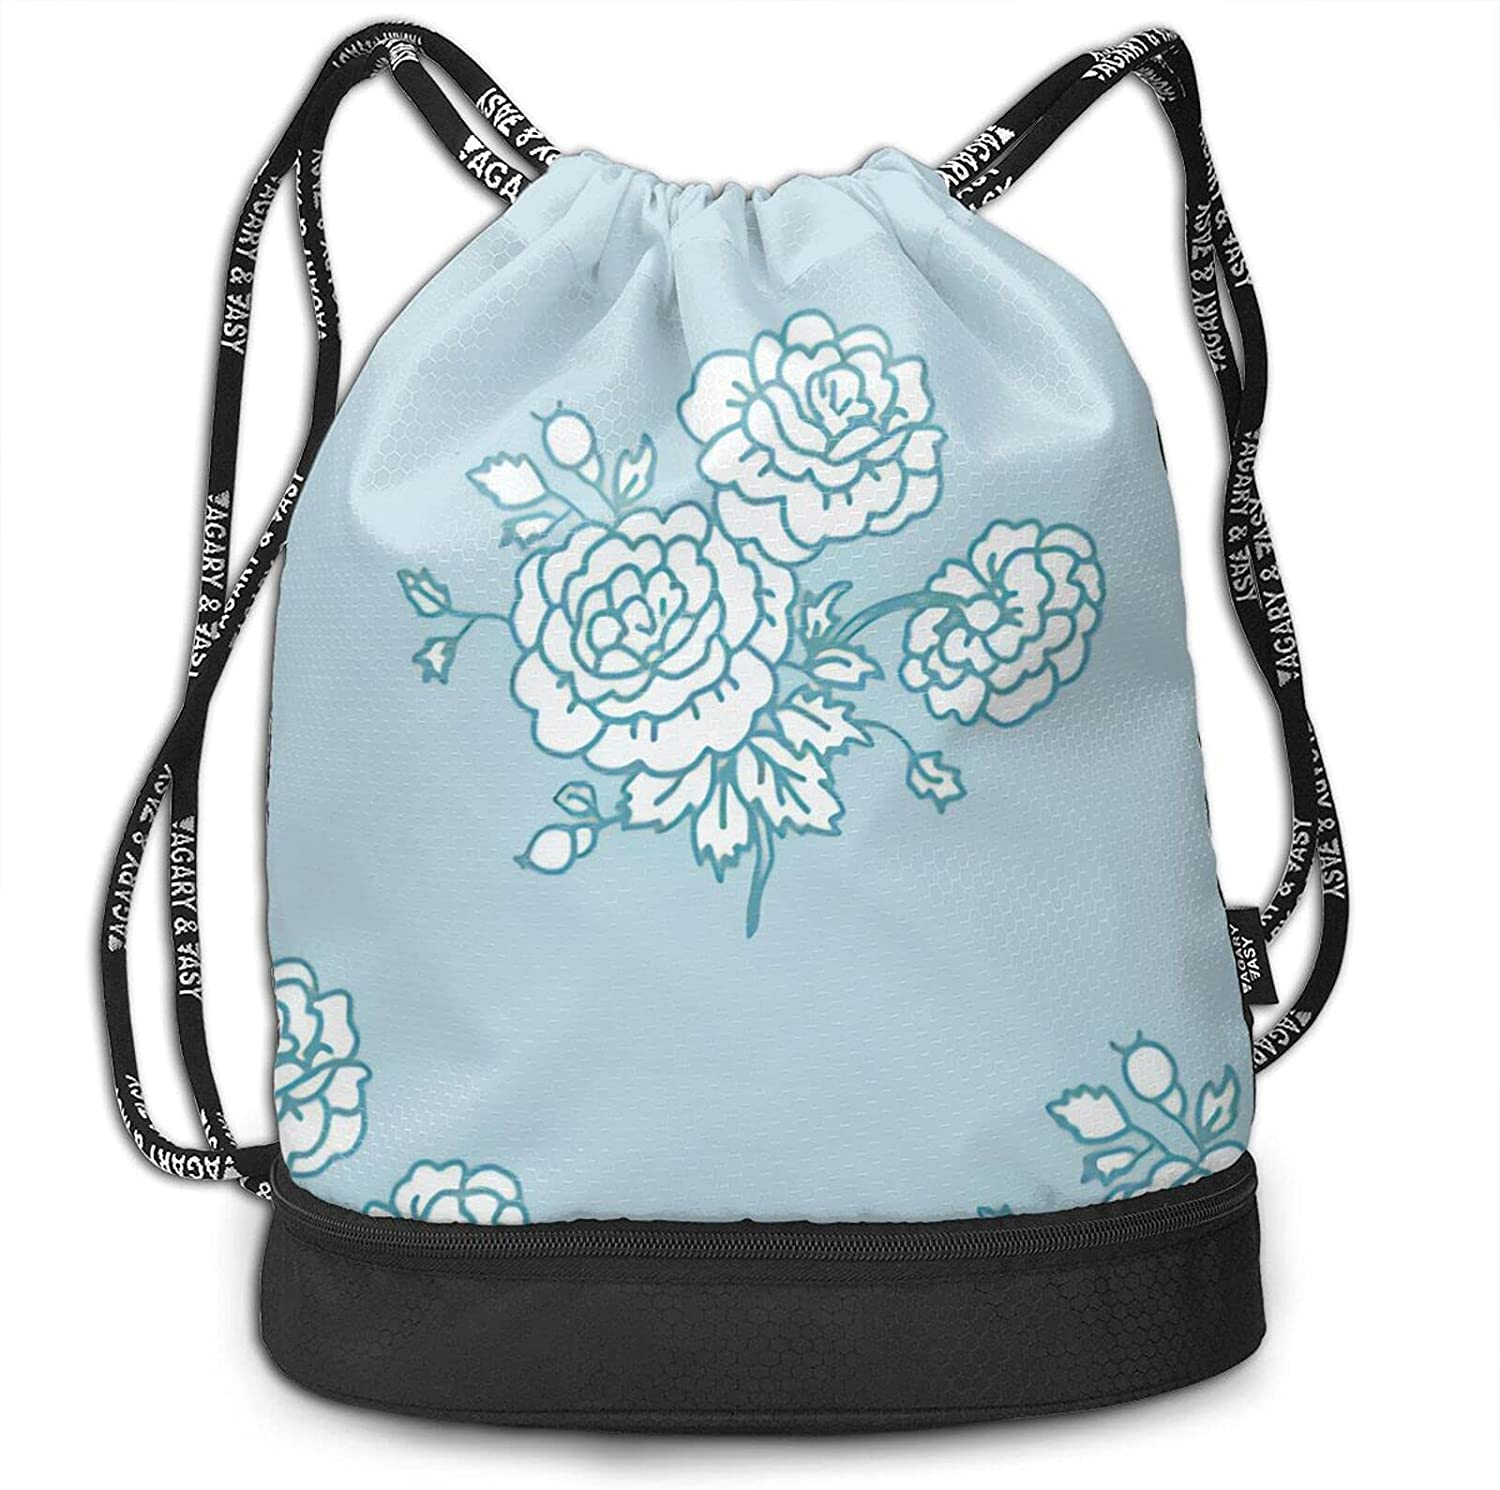 CURANI Drawstring Backpack Bombing free free shipping shipping chintz - blue Storage baby Pouch Bag